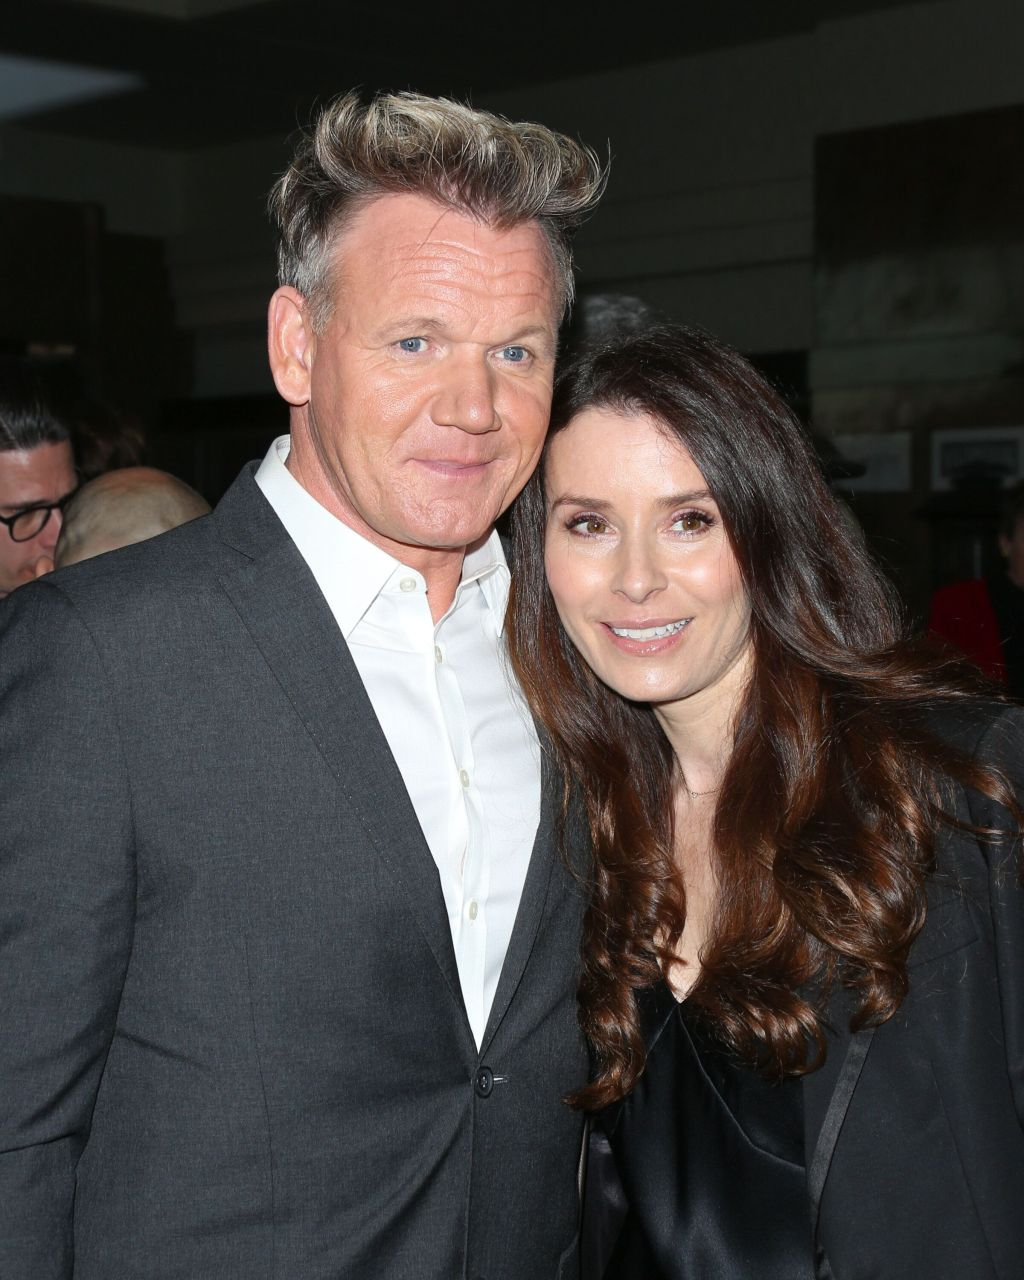 Gordon Ramsay's Baby Son Oscar Has Already Nailed The Chef's Trademark Scowl